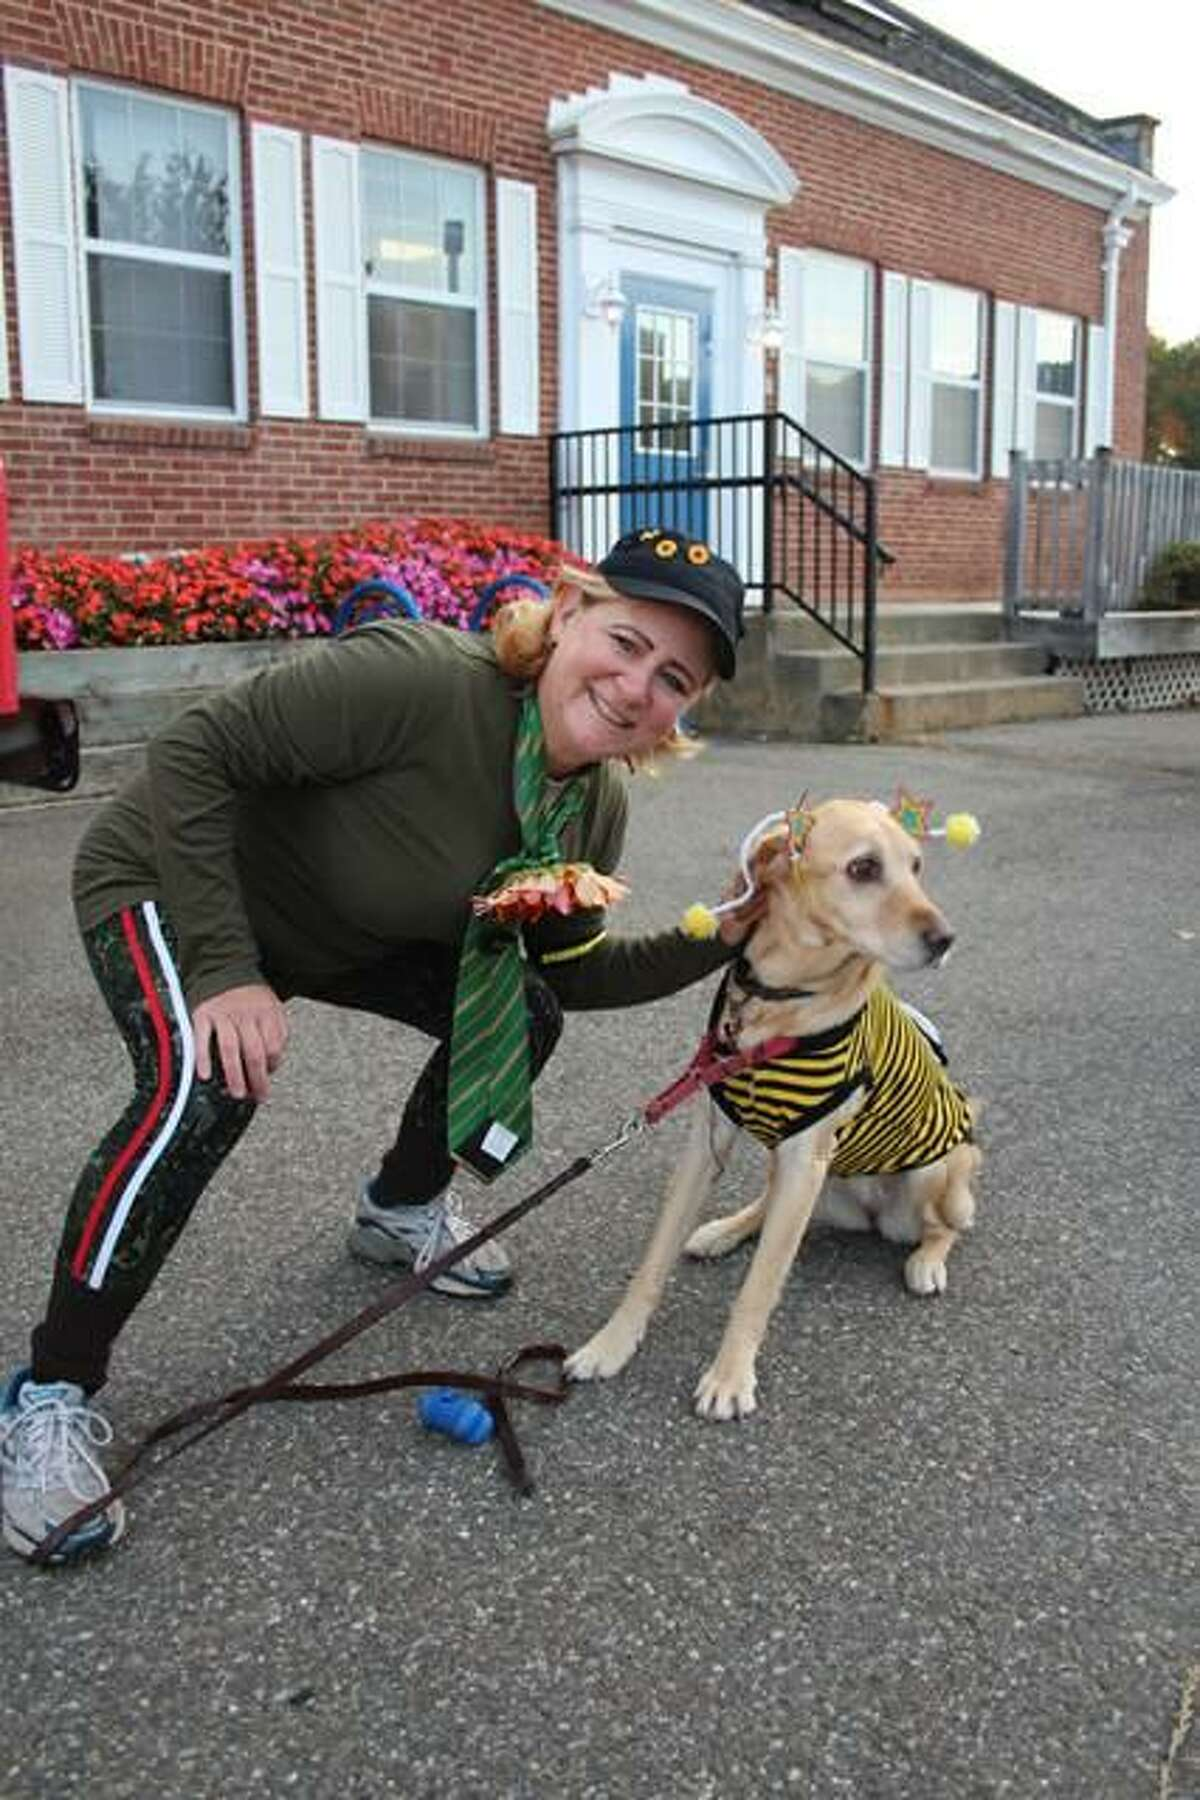 Shaileen Landsberg and her dog Abby the Labby dressed up in costume while they ran in the 2019 Milford Trick or Trot 5K fundraiser for the Beth-El Center.